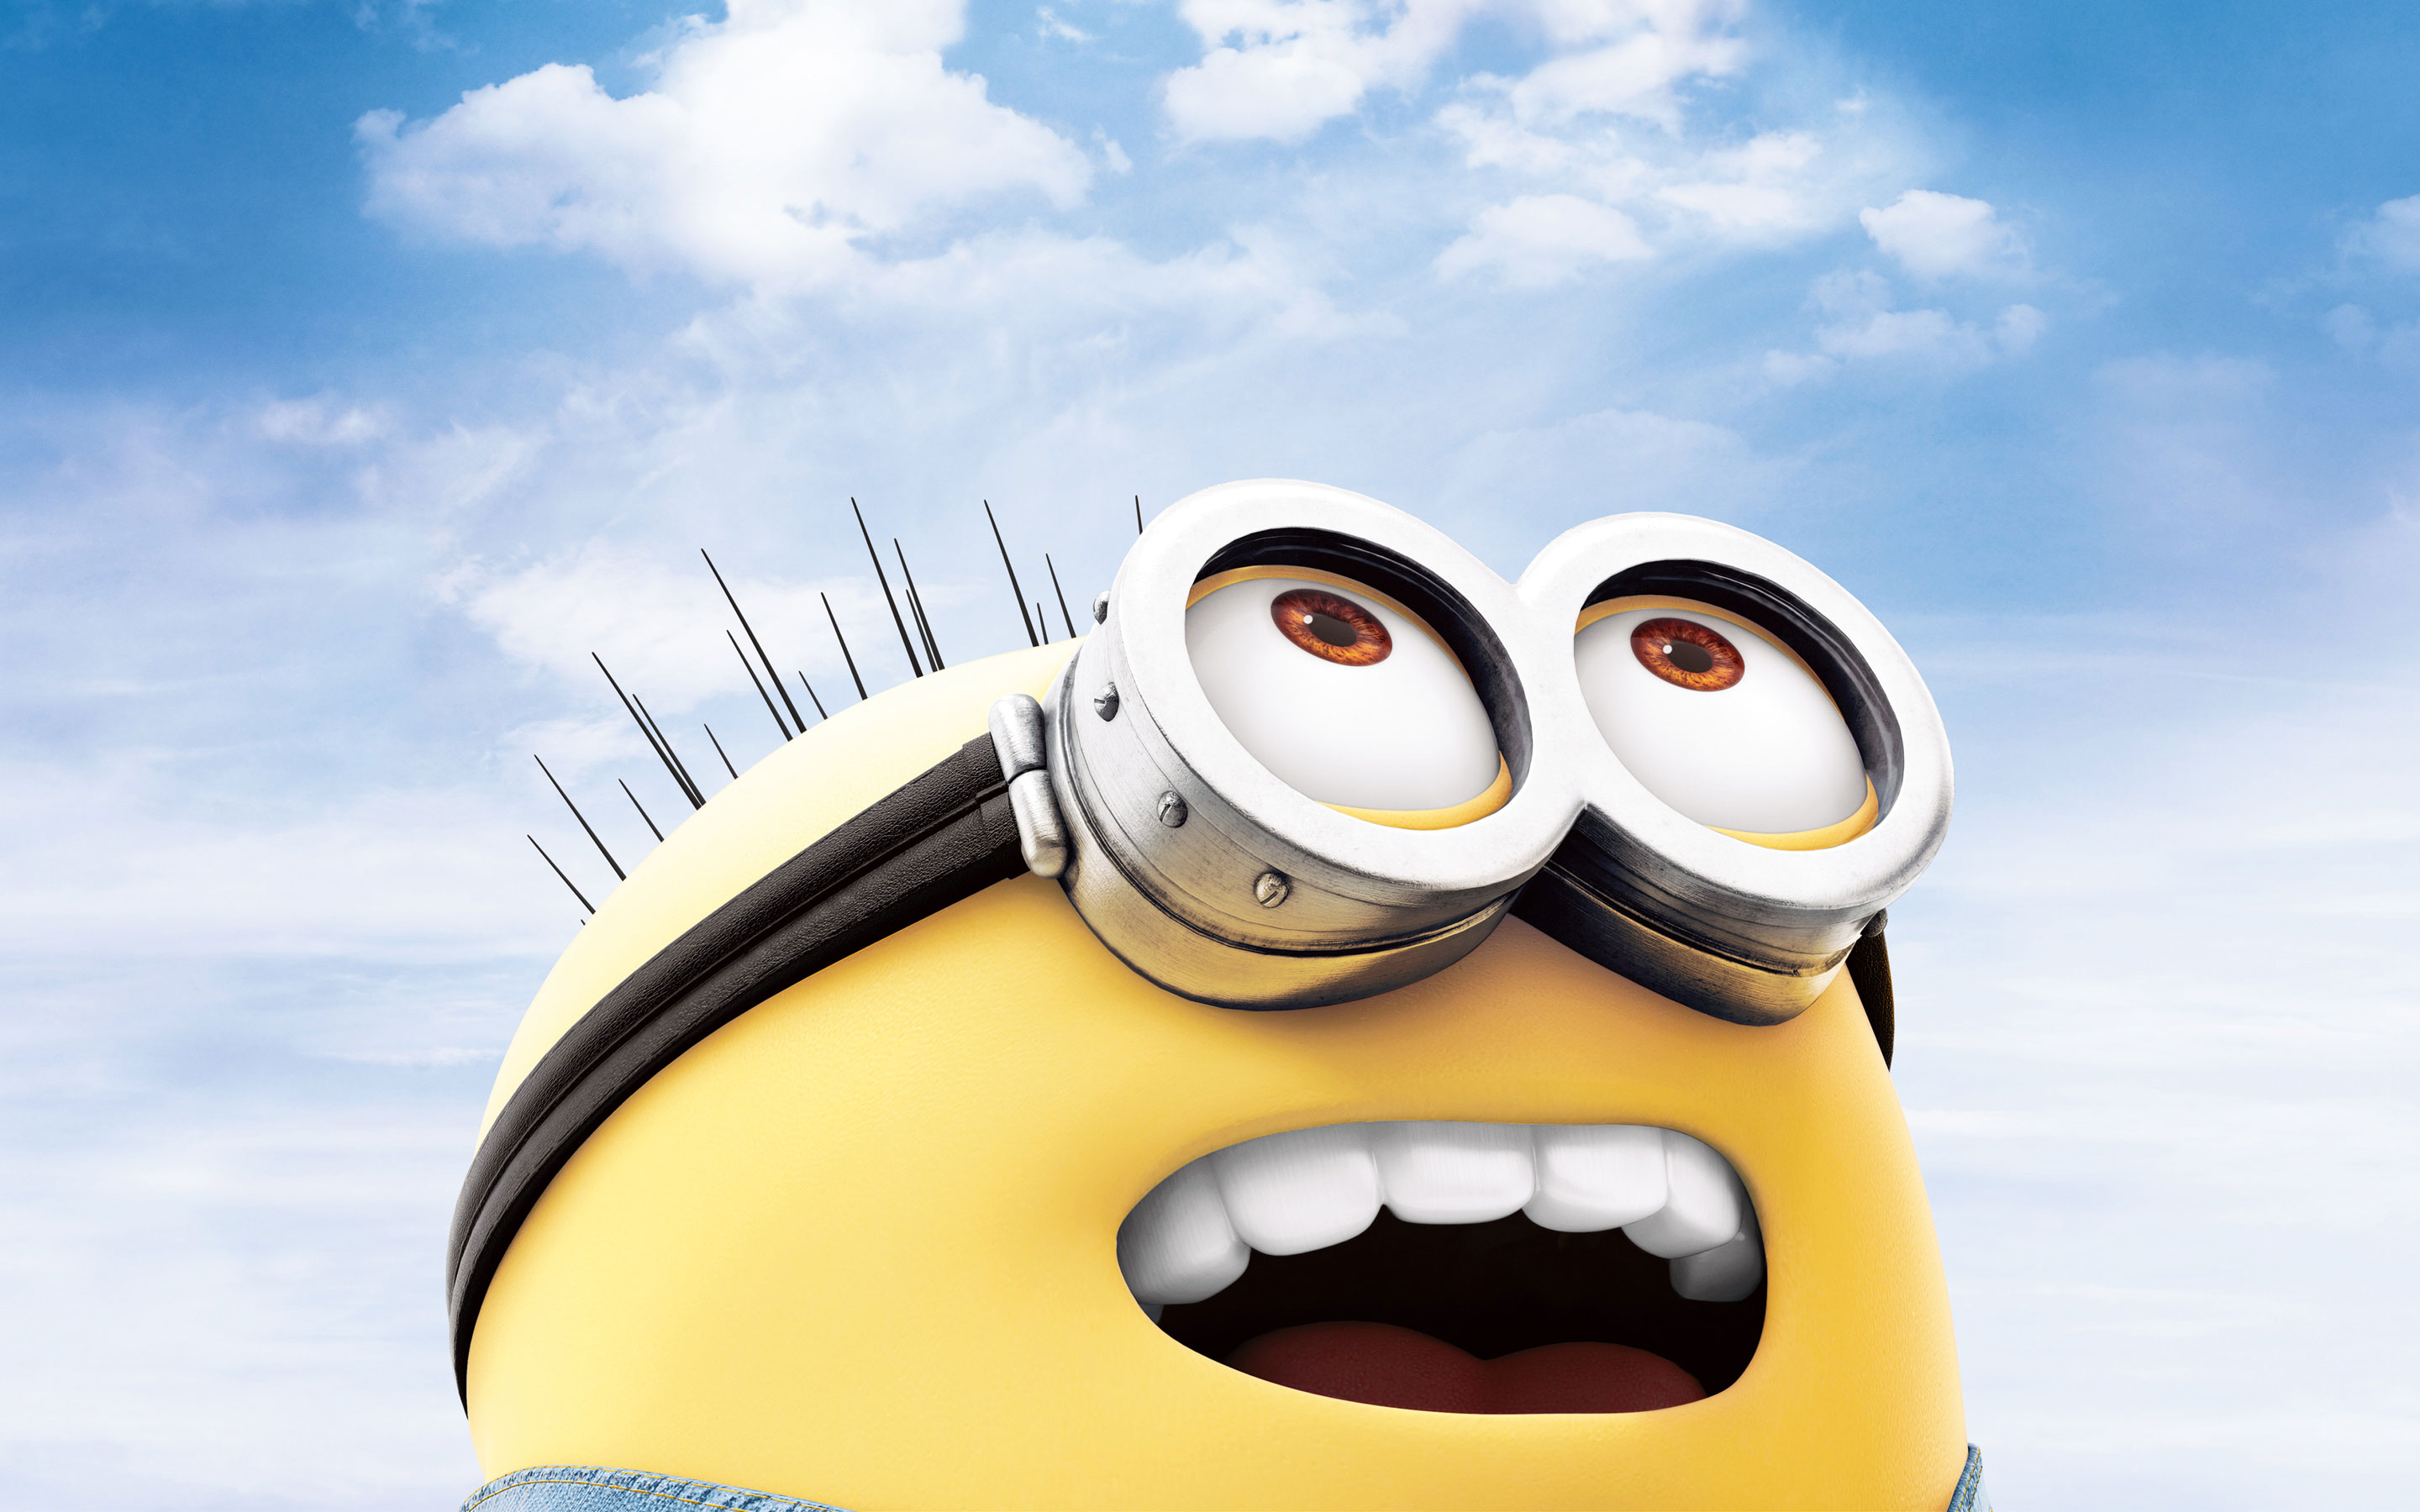 despicable me minions wallpapers - photo #1